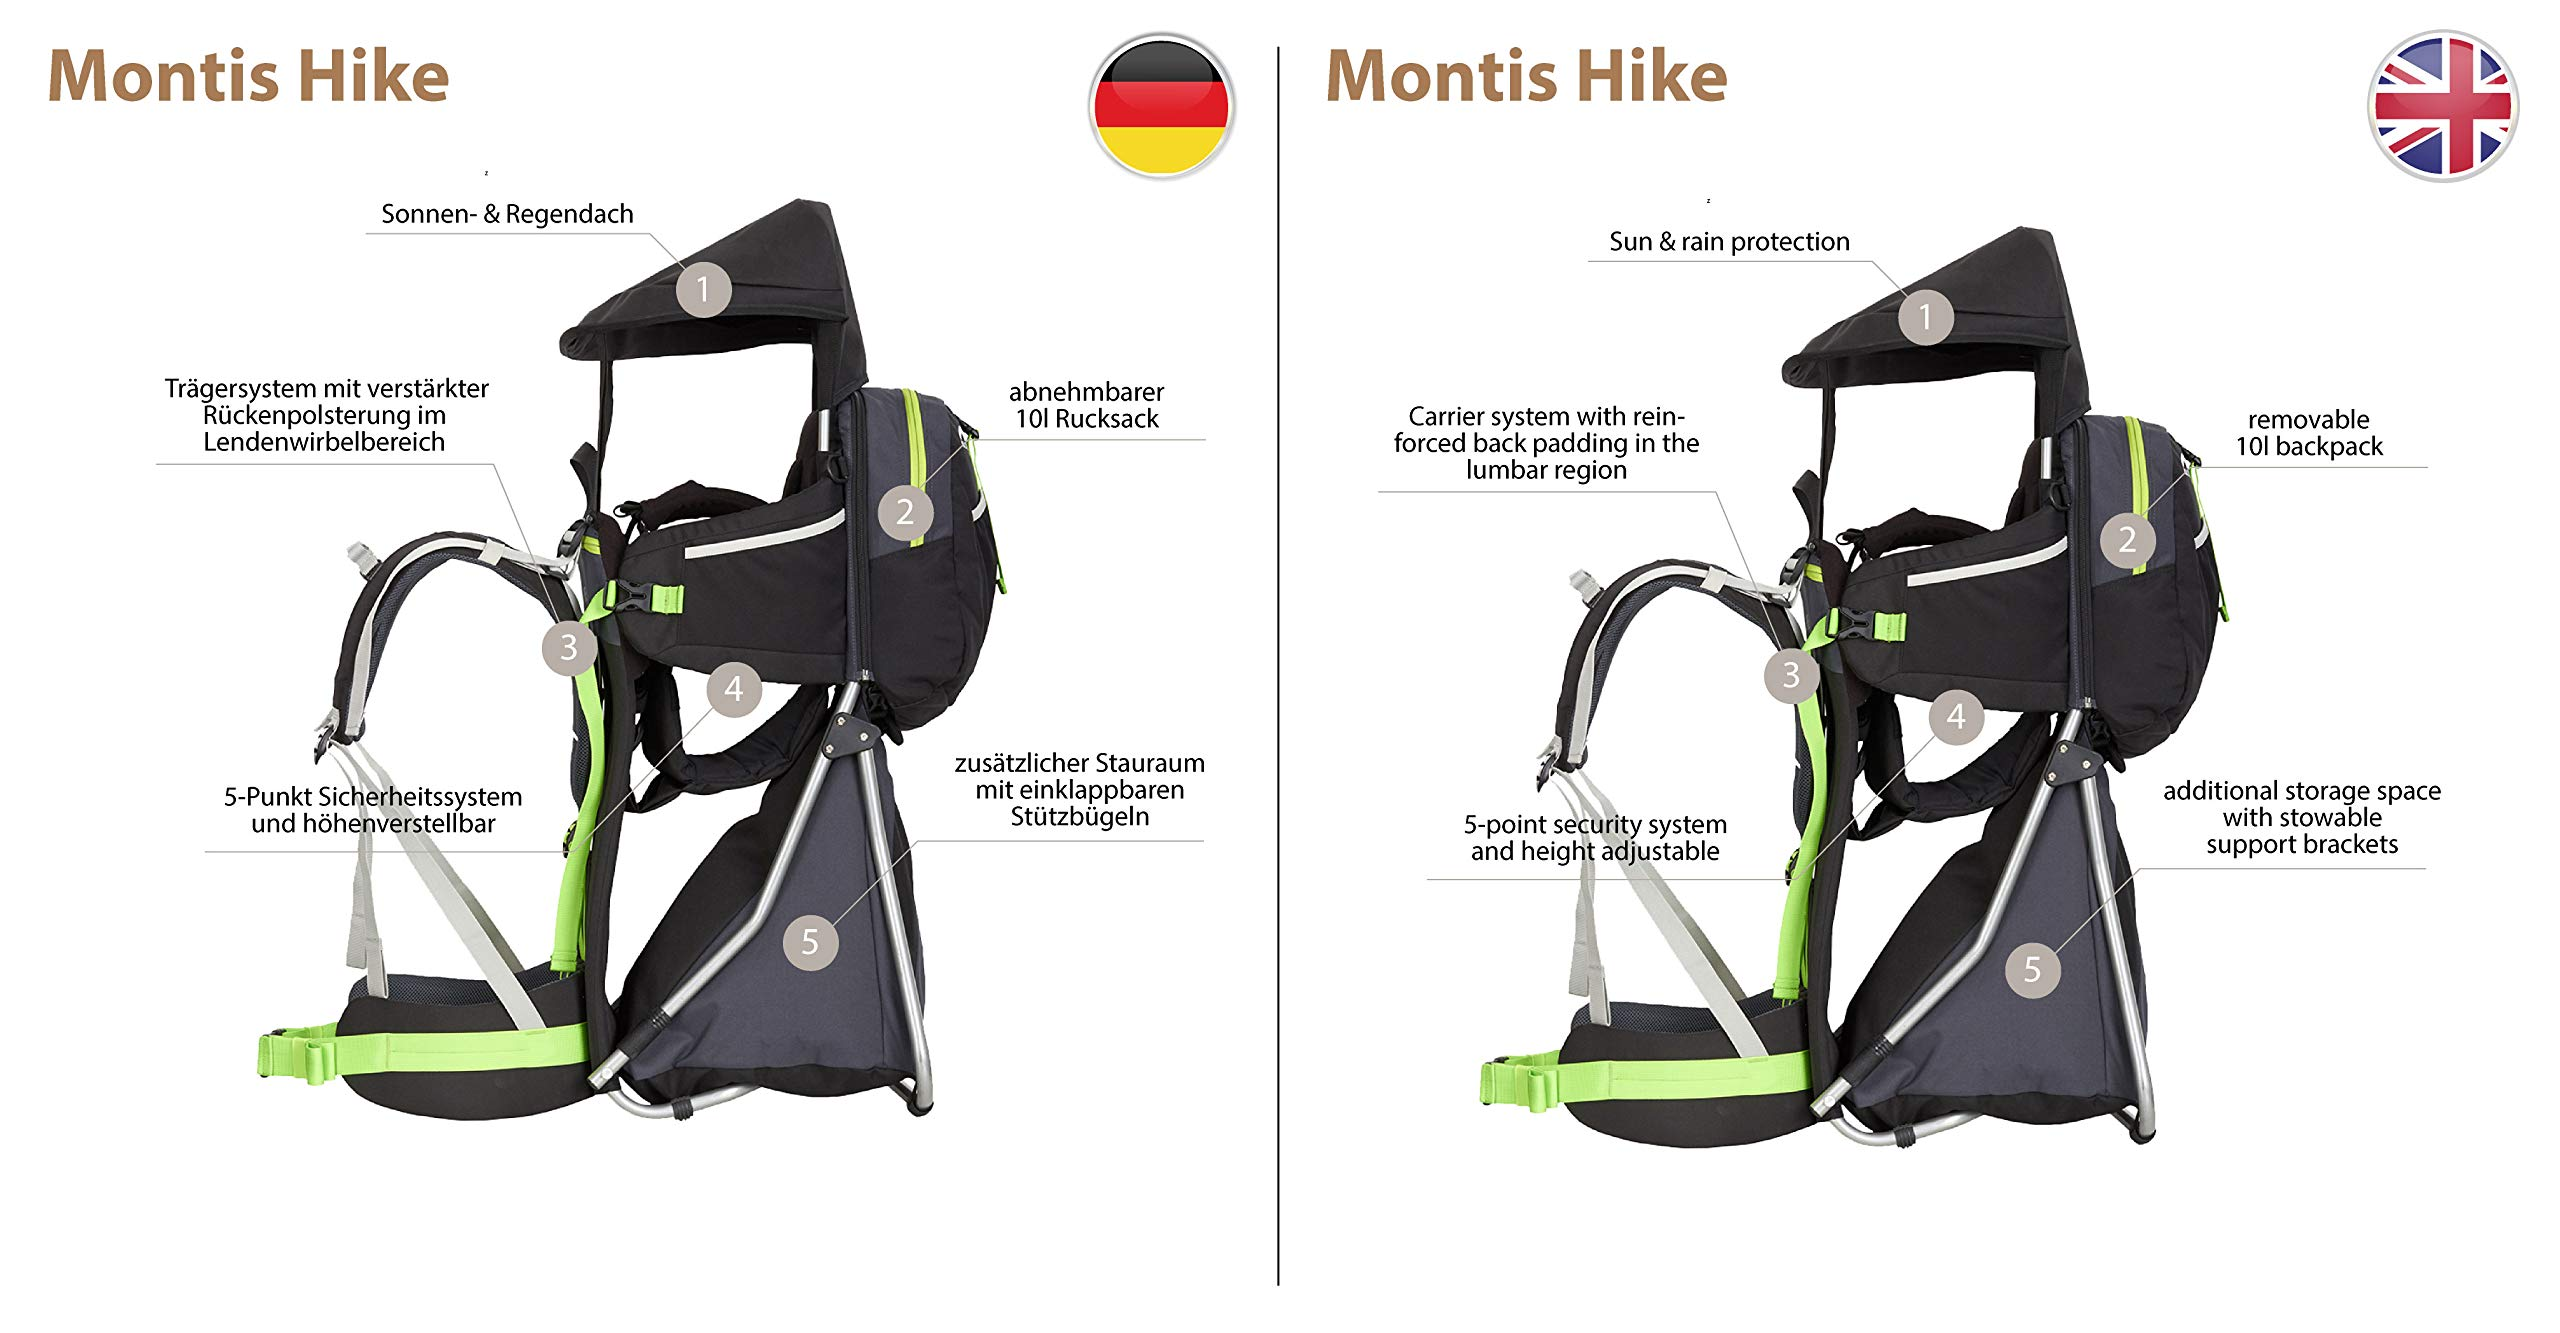 MONTIS HIKE, Premium Back Baby/Child Carrier, Up to 25kg, (black) M MONTIS OUTDOOR 89cm high, 37cm wide | up to 25kg | various colours | 28L seat bag Laminated and dirt-repellant outer material | approx. 2.2kg (without extras) Fully-adjustable, padded 5-point child's safety harness | plush lining, raised wind guard, can be filled from both sides | forehead cushion 3